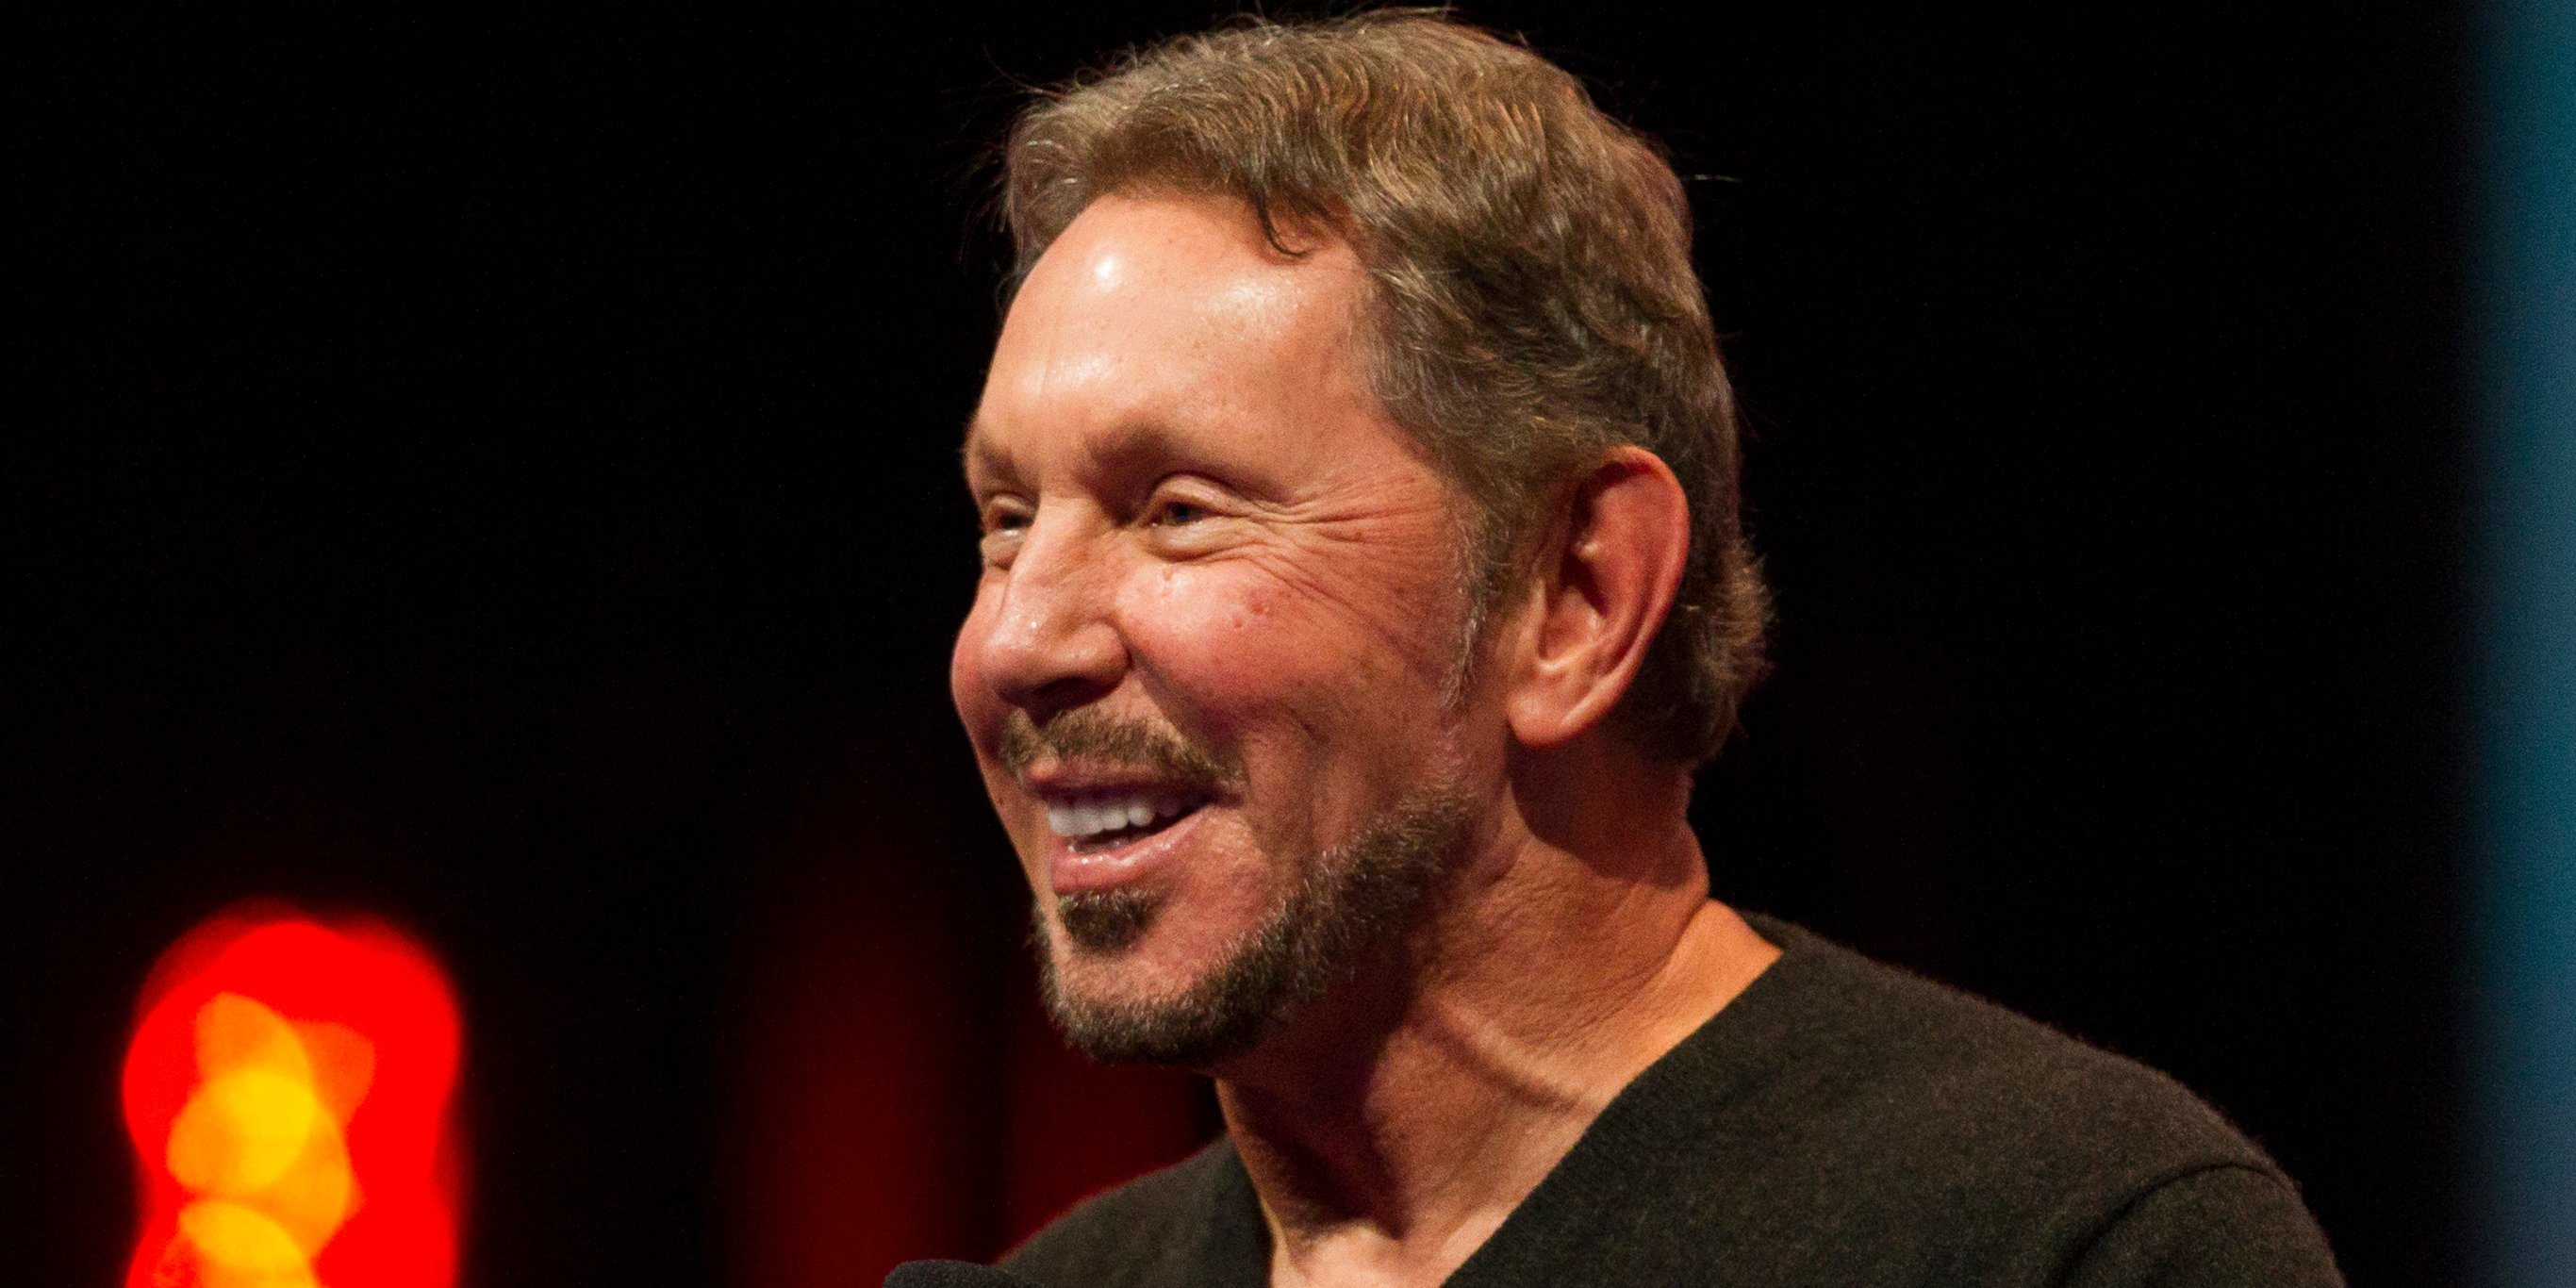 Larry Ellison says Oracle will 'write into your contract that your bill will be half' of what you'd pay Amazon, as the database giant announces new cloud products (ORCL)